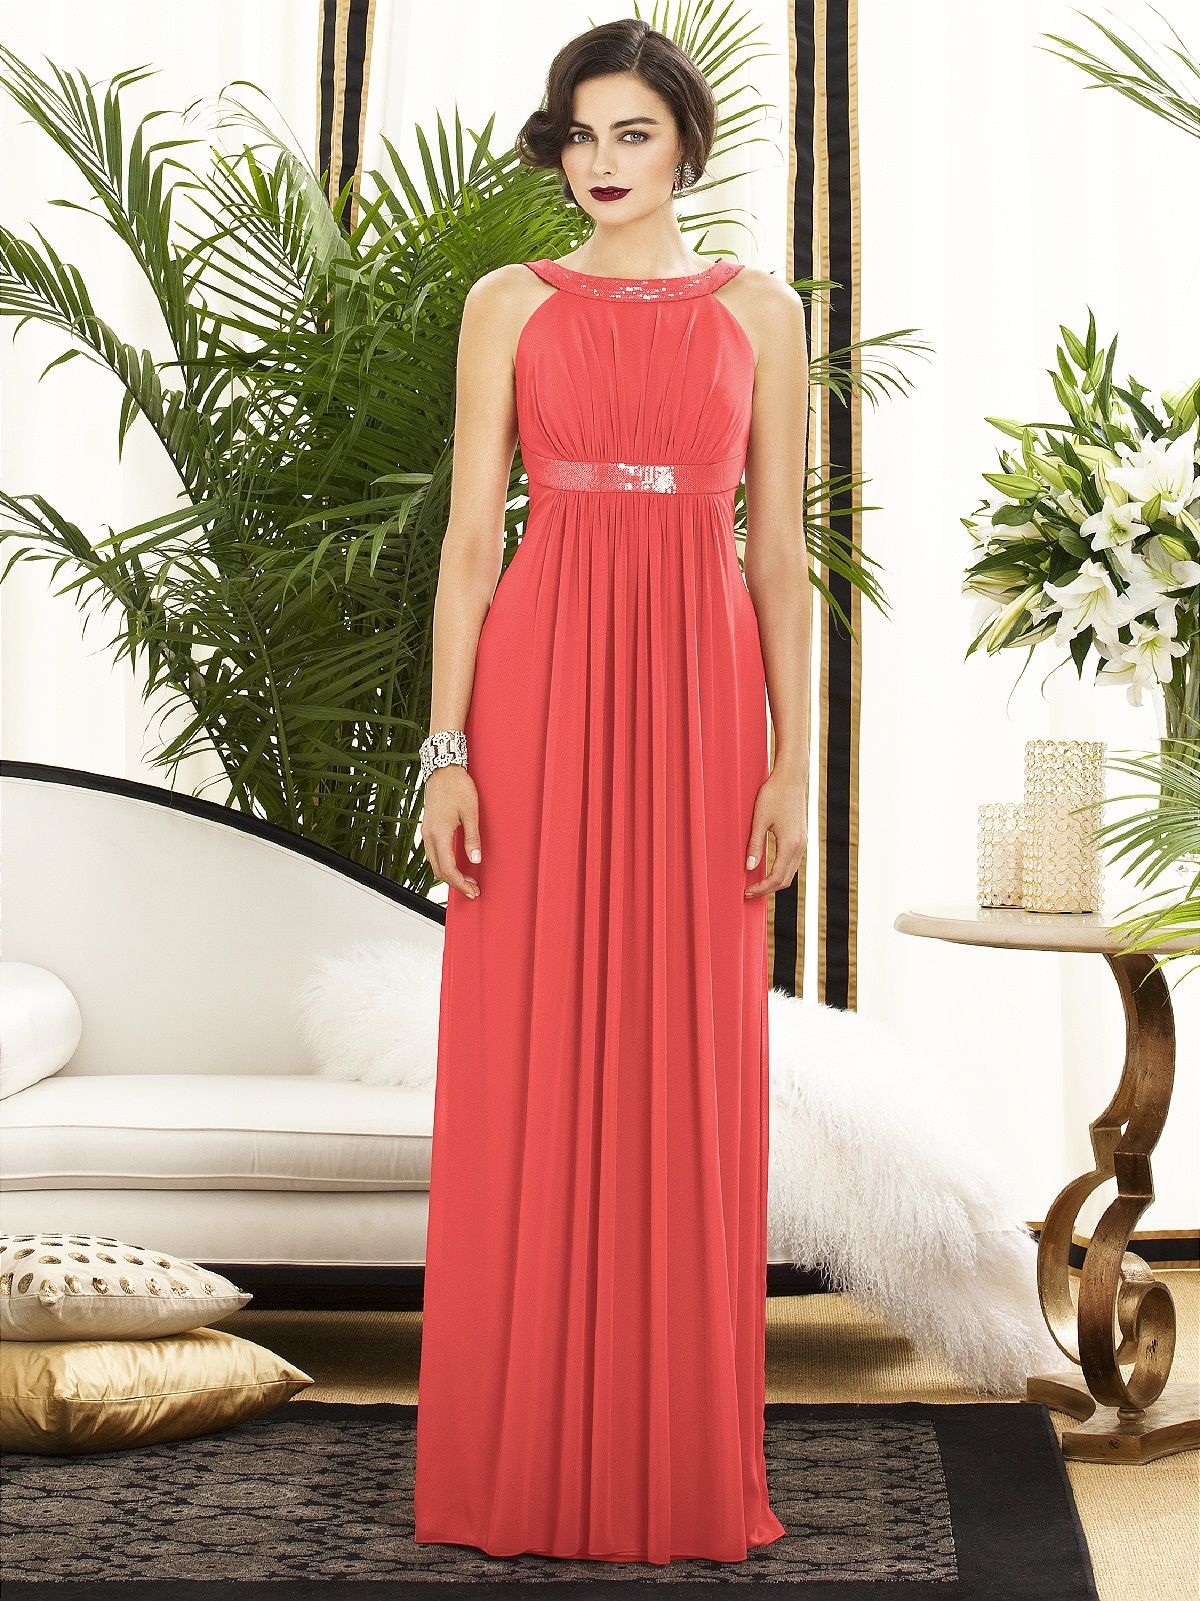 Red dress for wedding reception  Dessy Collection Style  The Dessy Group  Posters for my wall